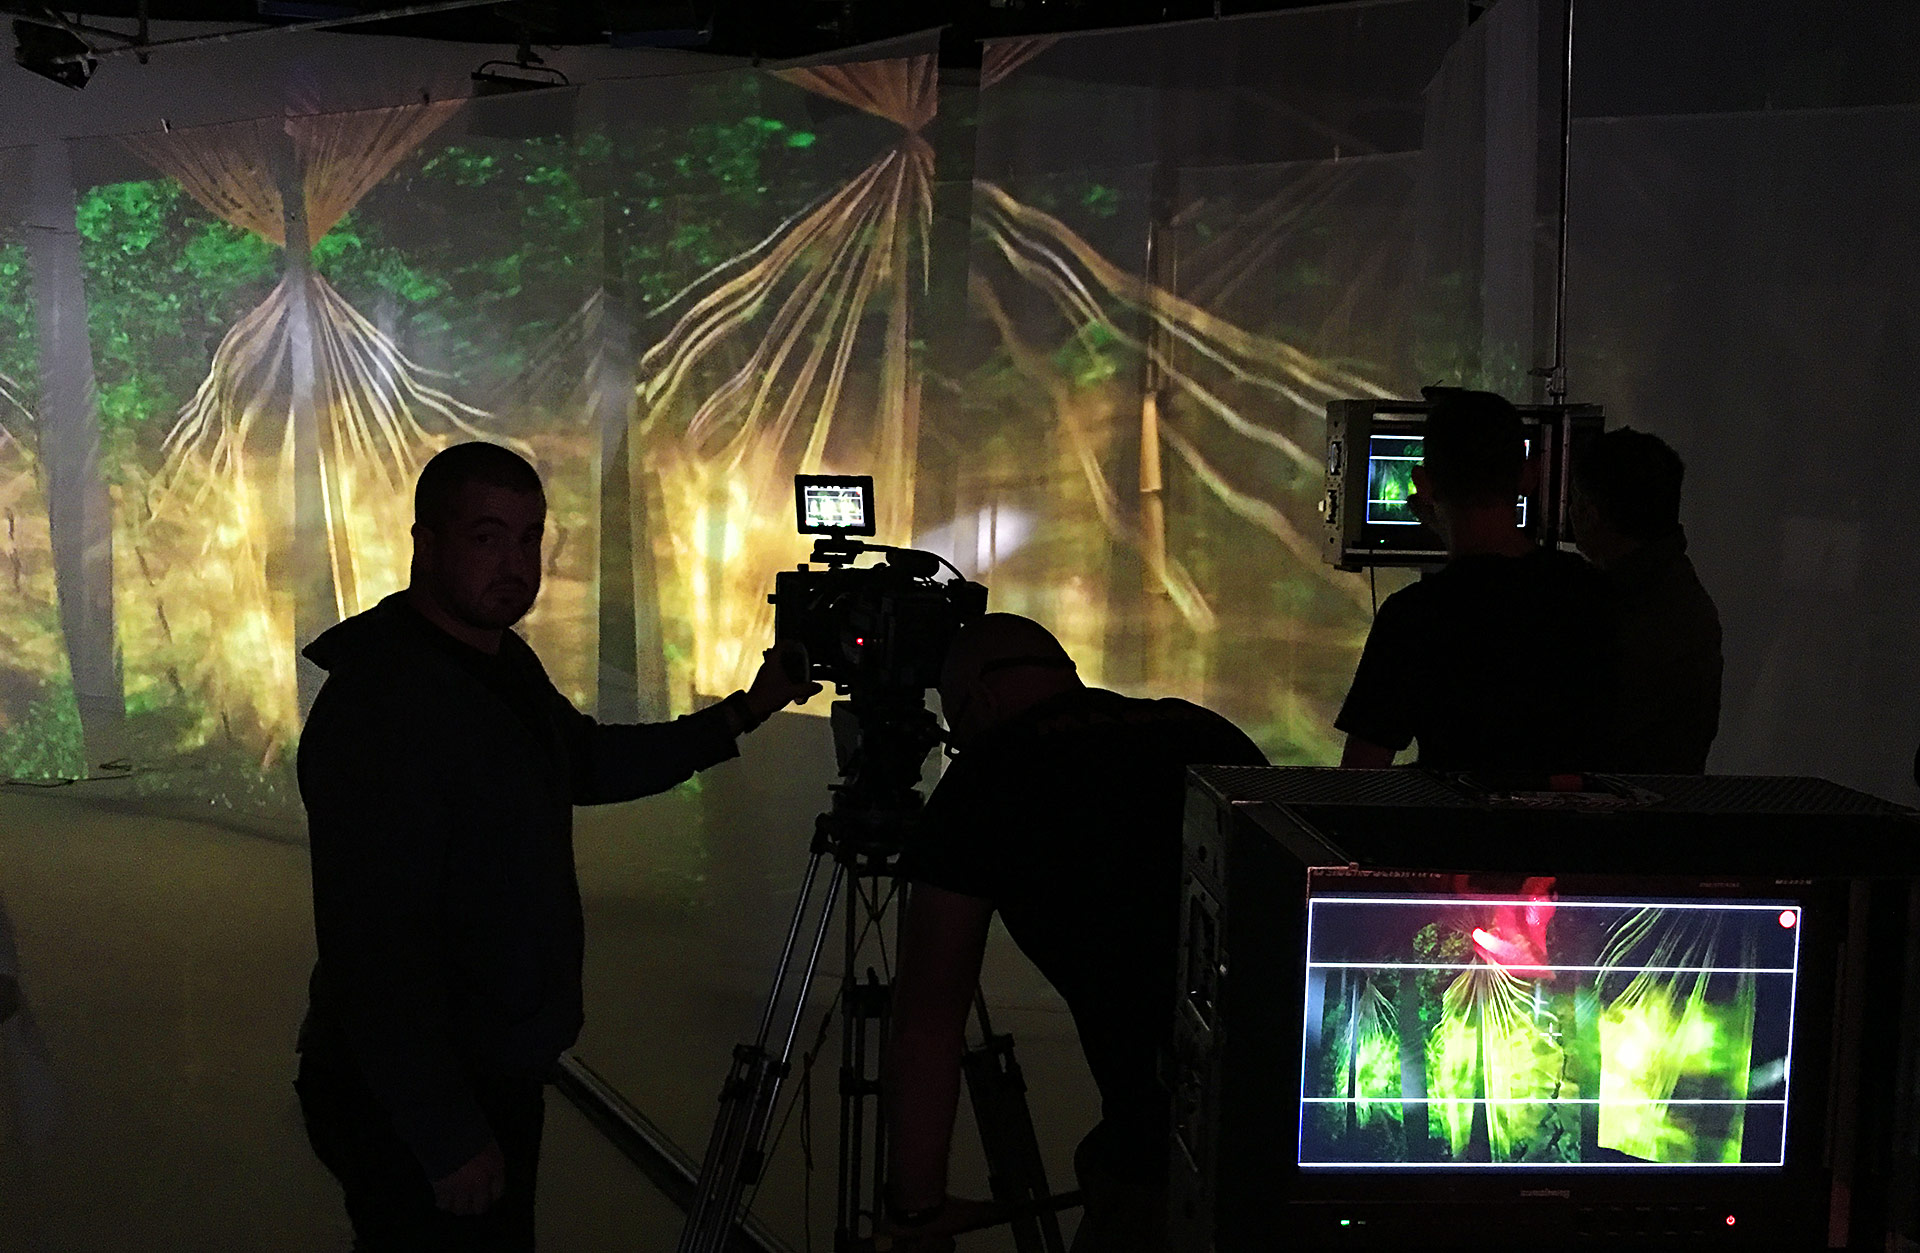 front projection effects being used